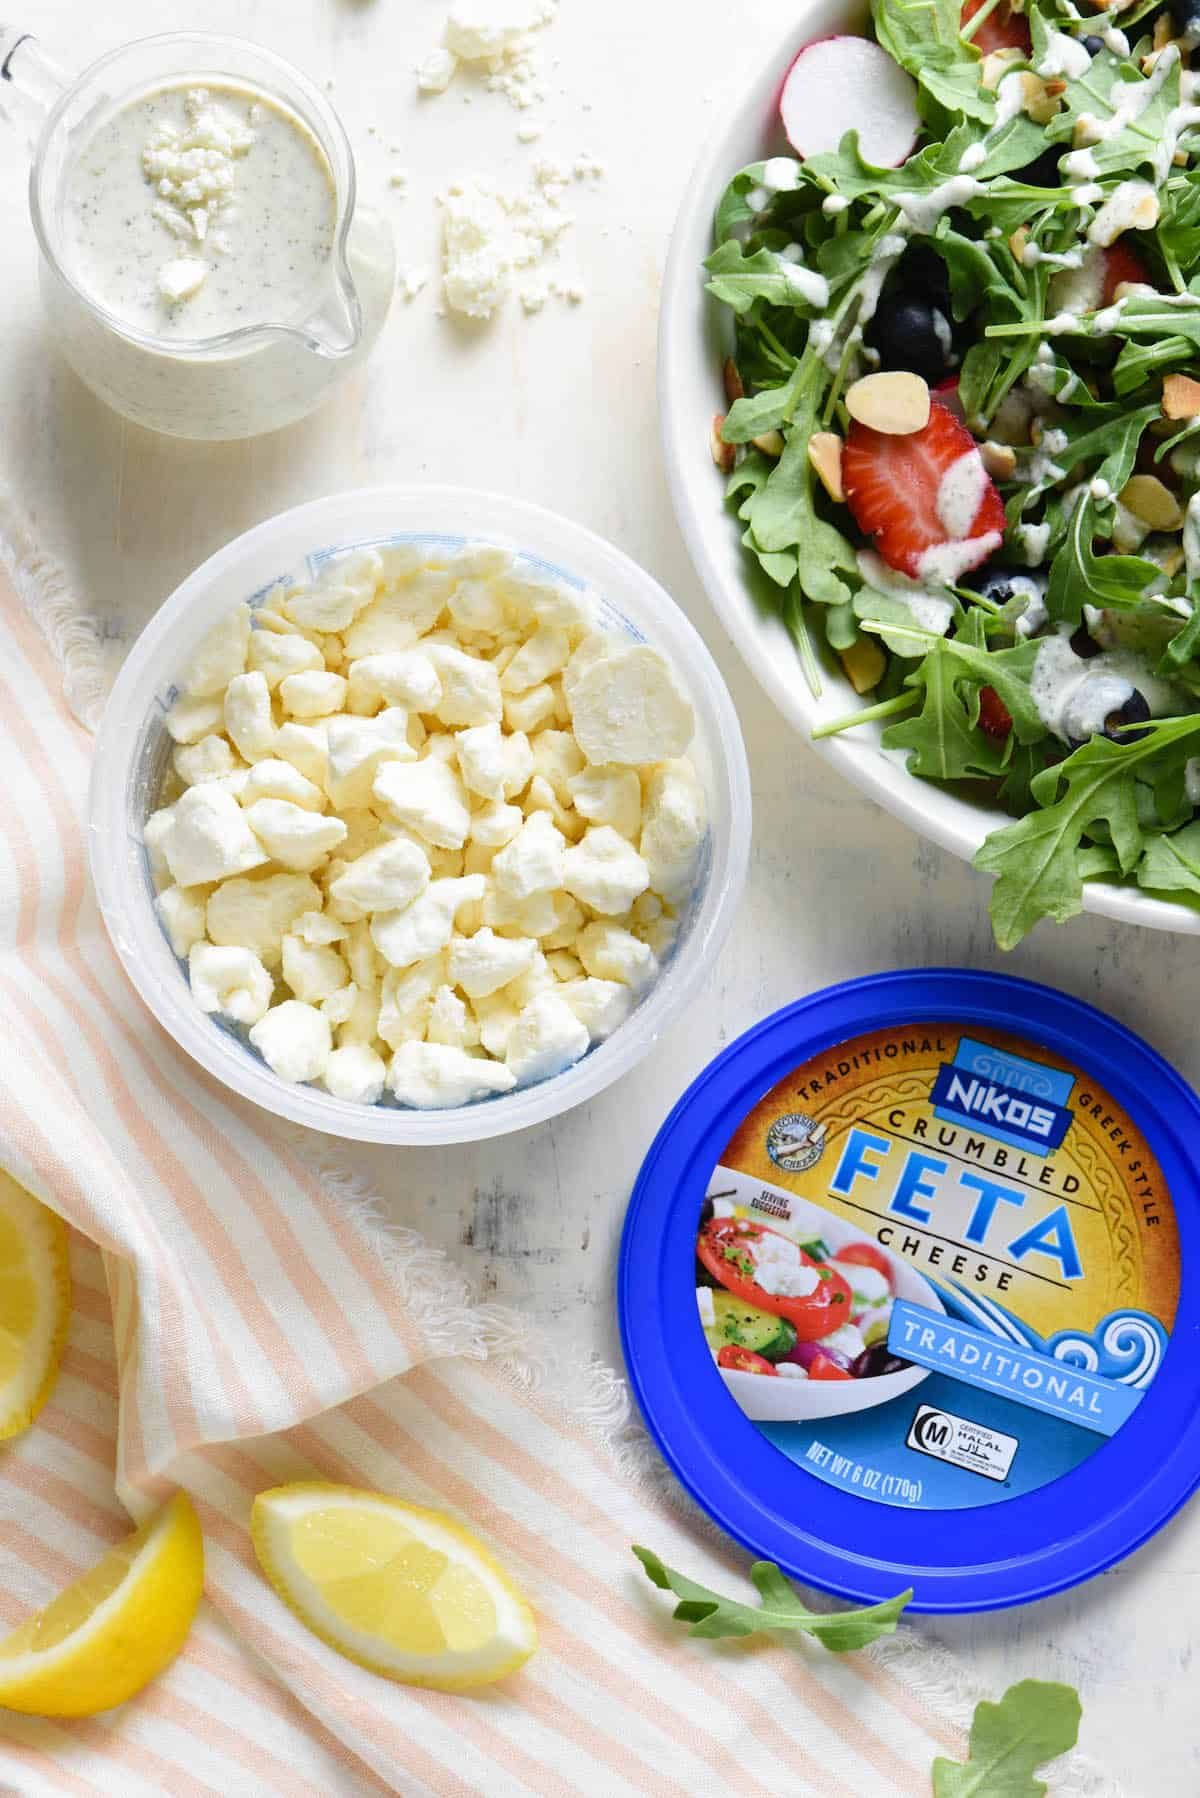 Take your salad game up a notch with this quick and easy homemade Creamy Lemon Feta Dressing. Use it to dress greens or pasta salad, add some pizazz to grilled chicken, or serve as a veggie dip. | foxeslovelemons.com